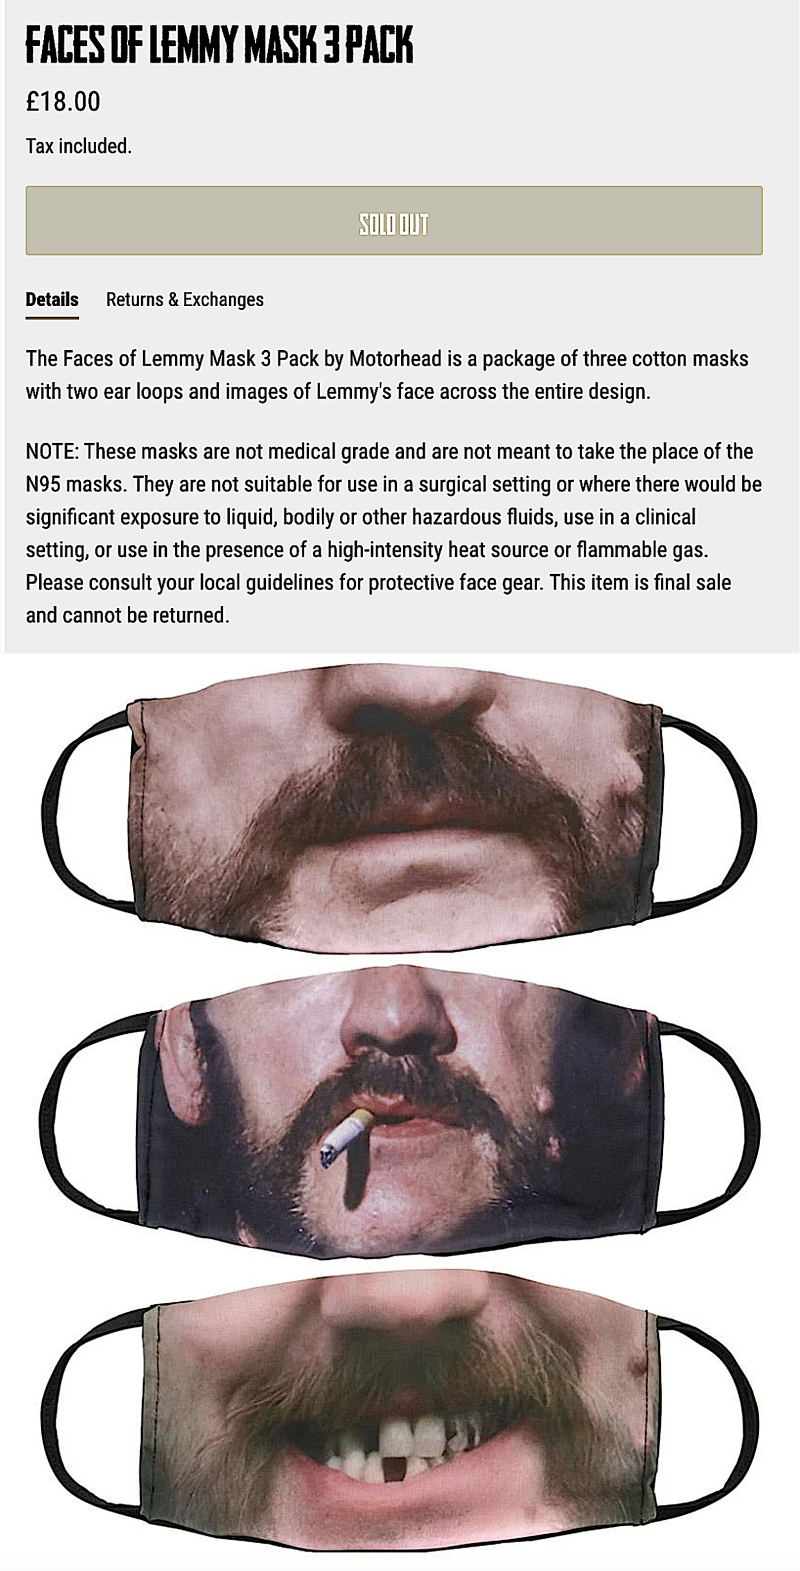 Lemmy masks